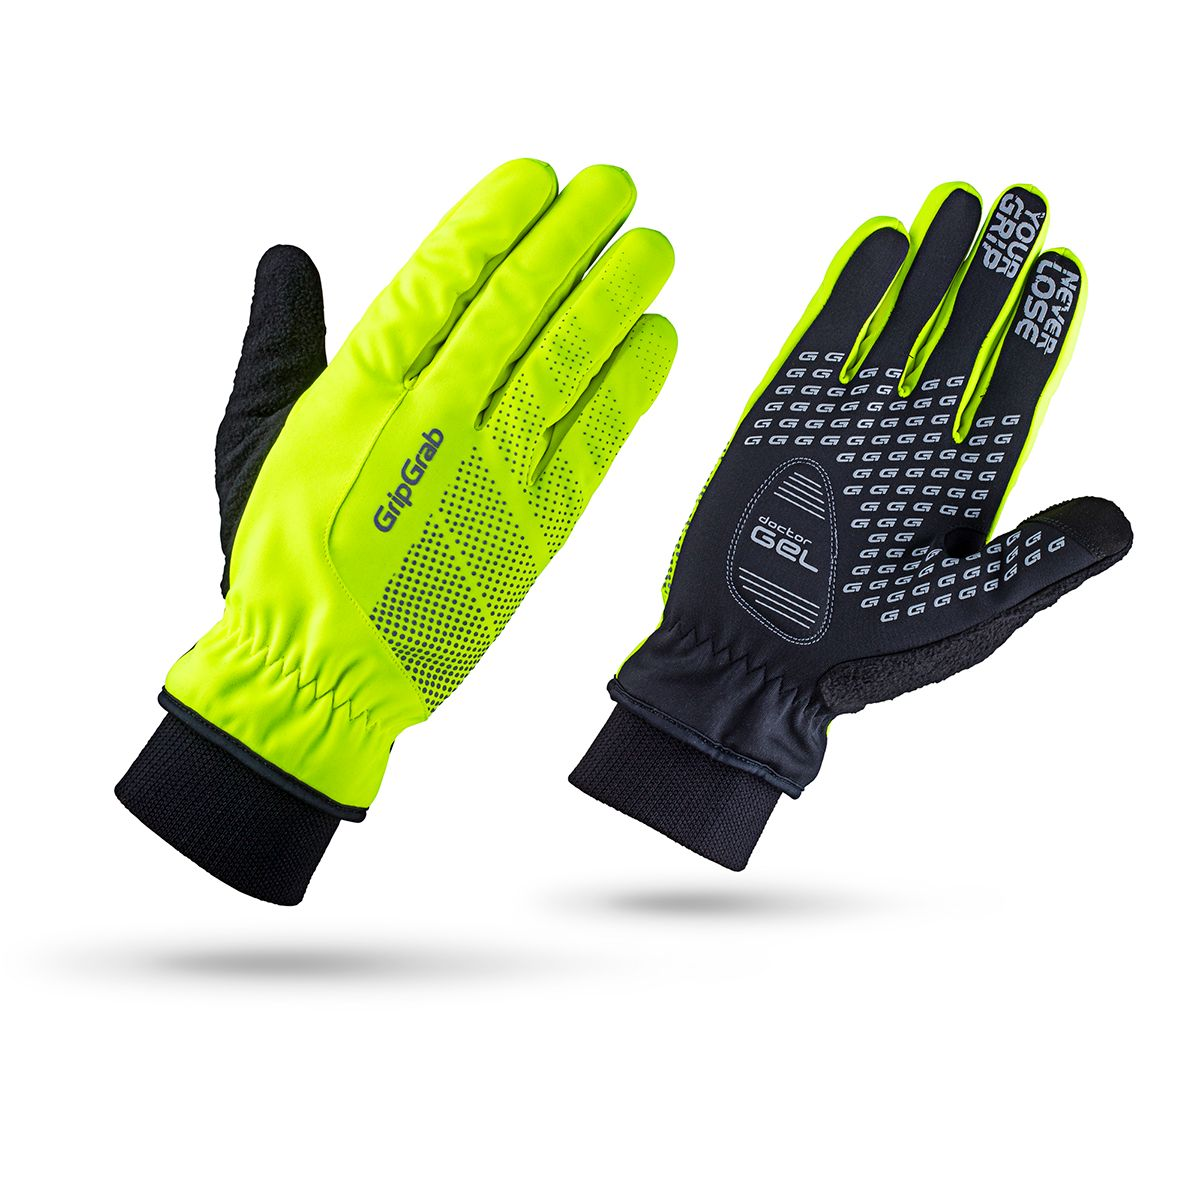 RIDE WINDPROOF HI-VIS WINTER GLOVE